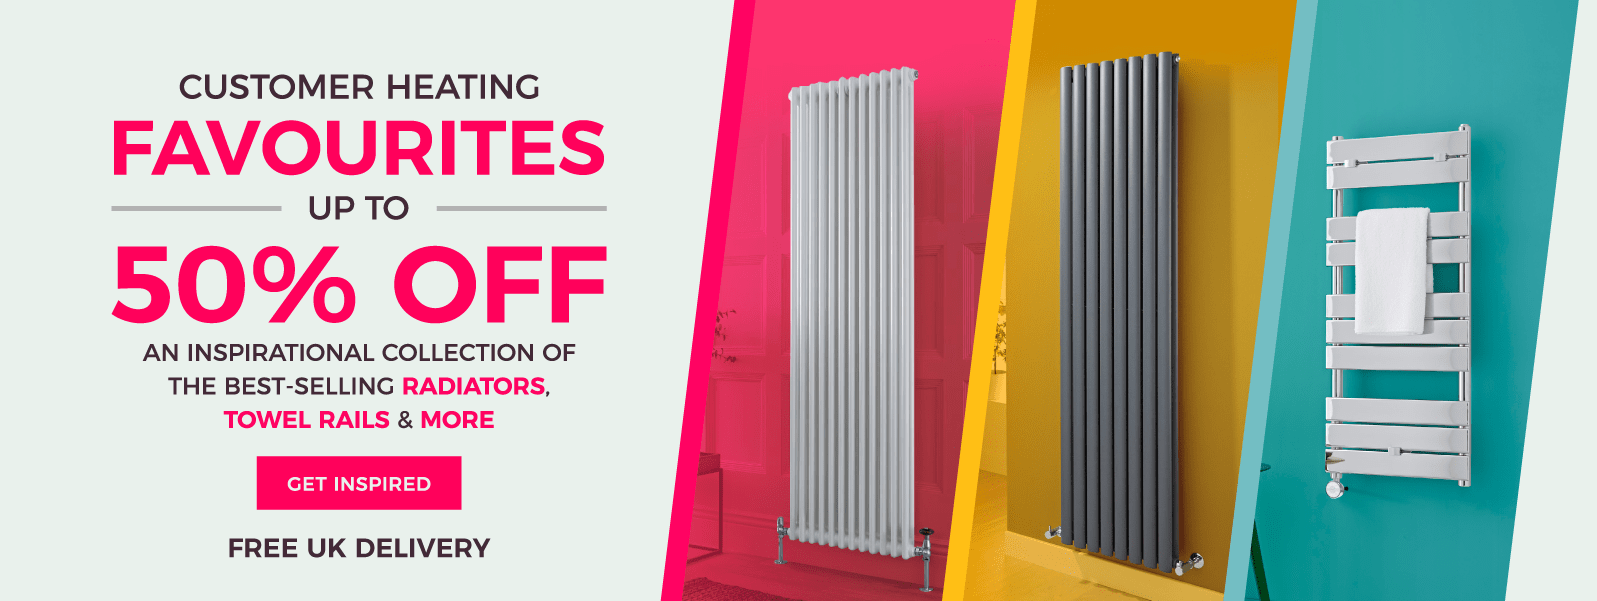 Customer Heating FAVOURITES - UP TO 50% OFF - An Inspirational Collection of the best-selling radiators, towel rails & more